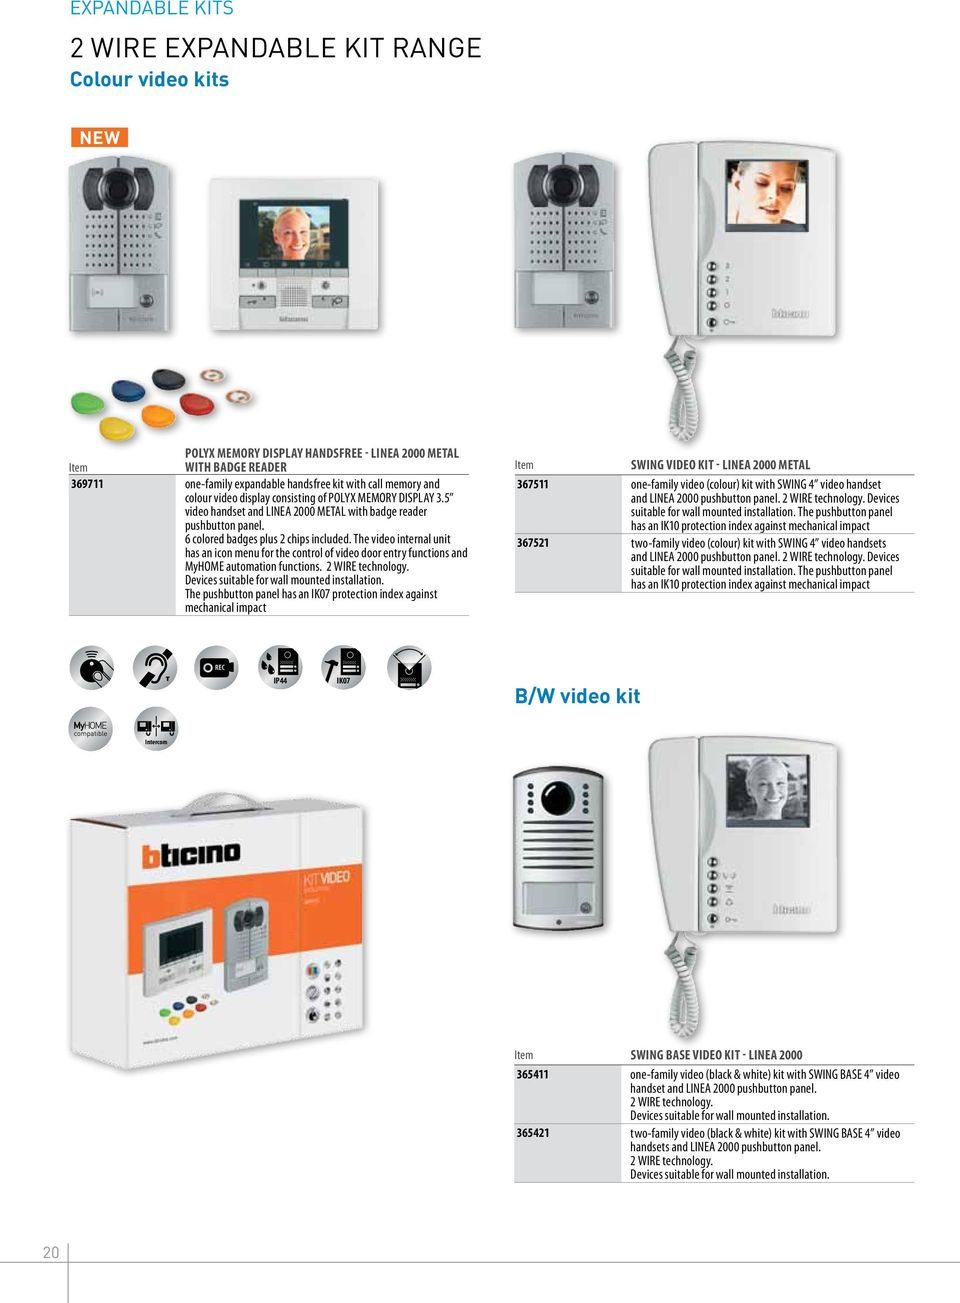 The video internal unit has an icon menu for the control of video door entry functions and MyHOME automation functions. 2 WIRE technology. Devices suitable for wall mounted installation.